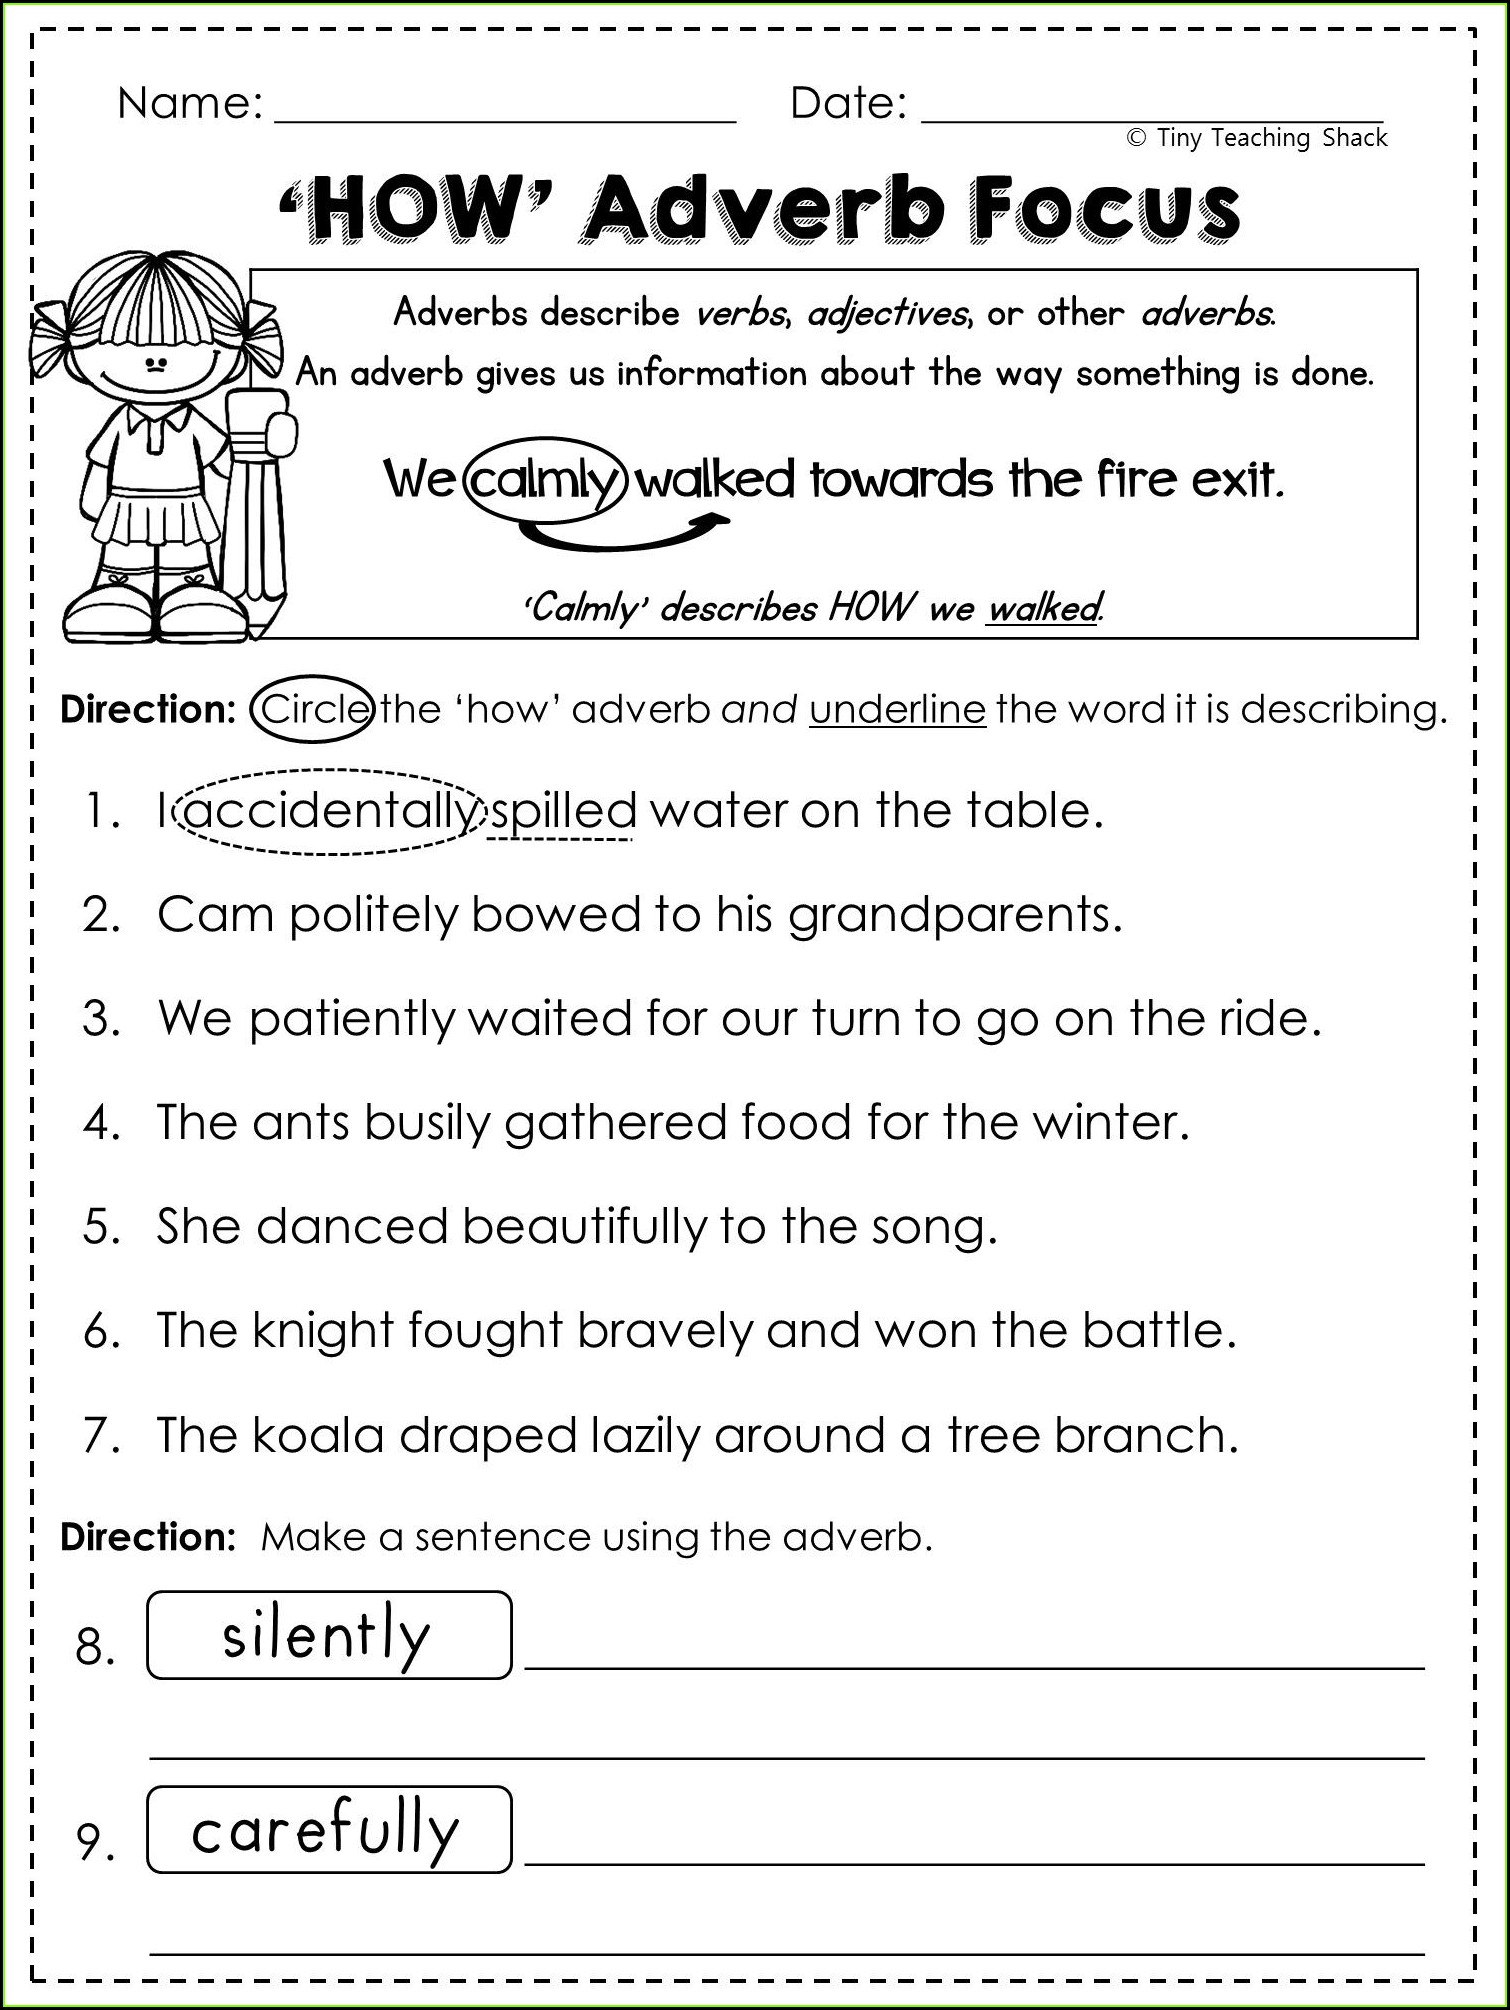 Grade 4 Adverbs Worksheet 4th Grade